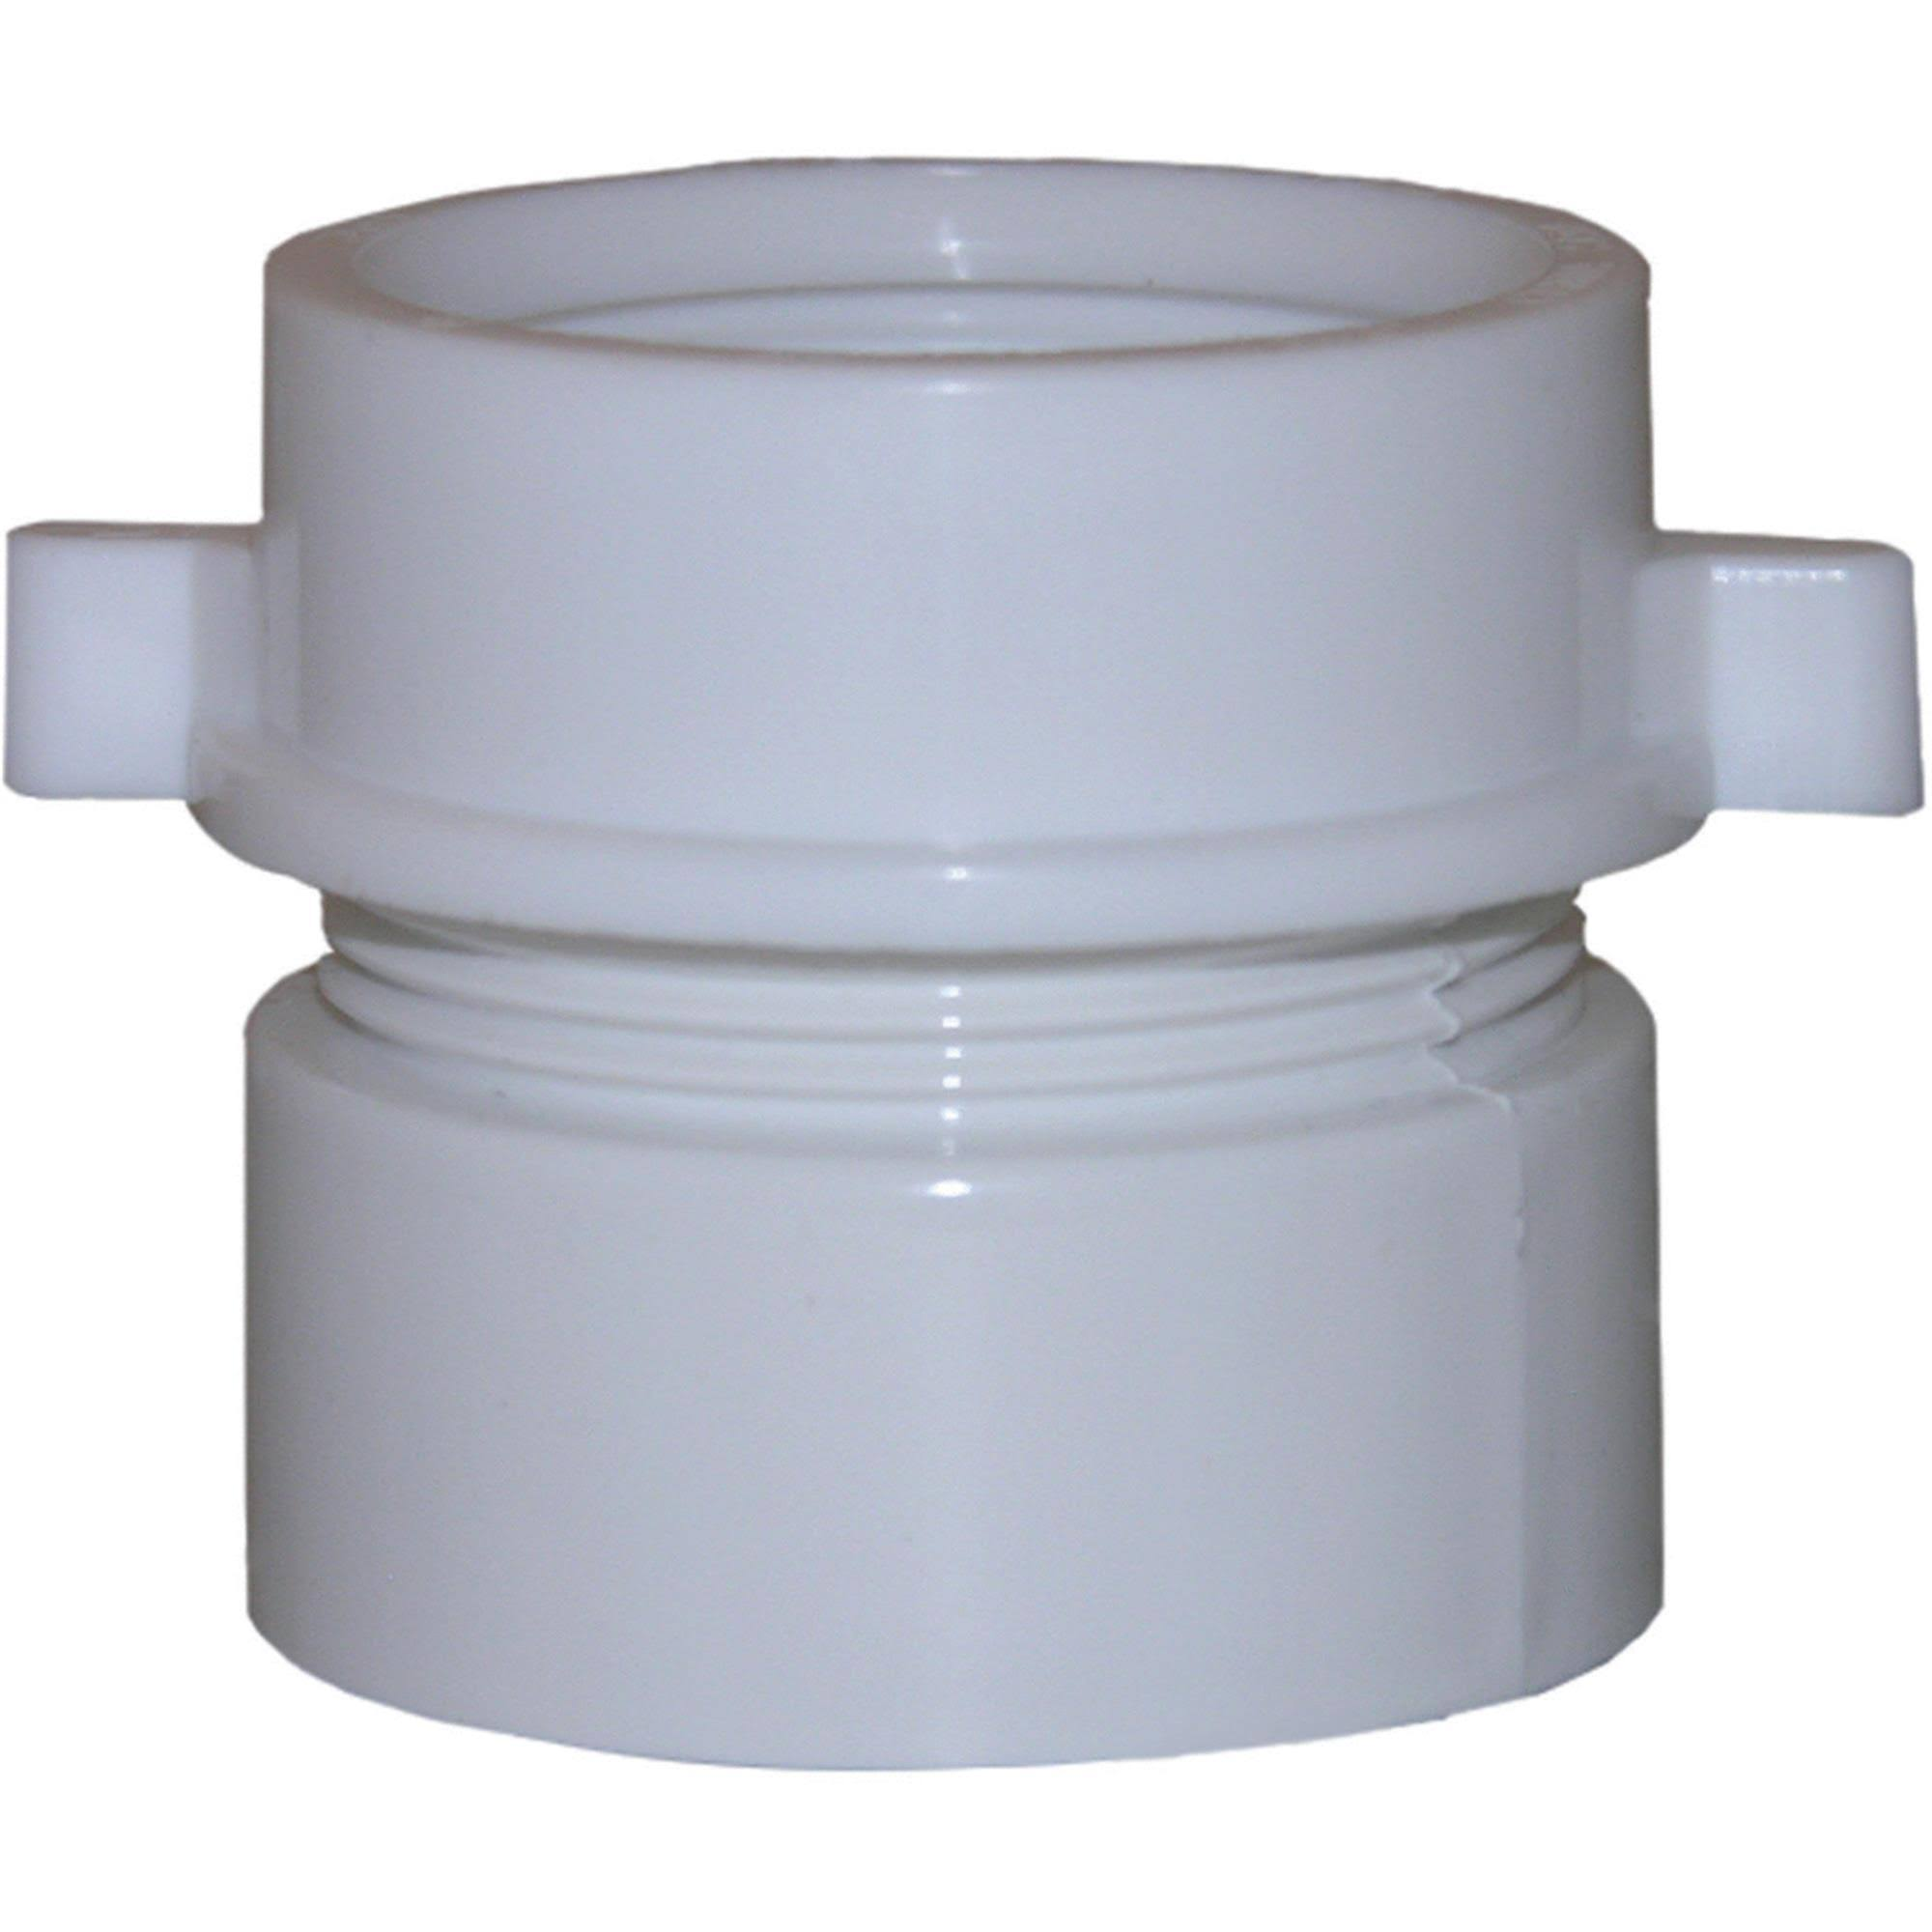 Larsen Supply Pvc Drain Adapter - 1-1/2""